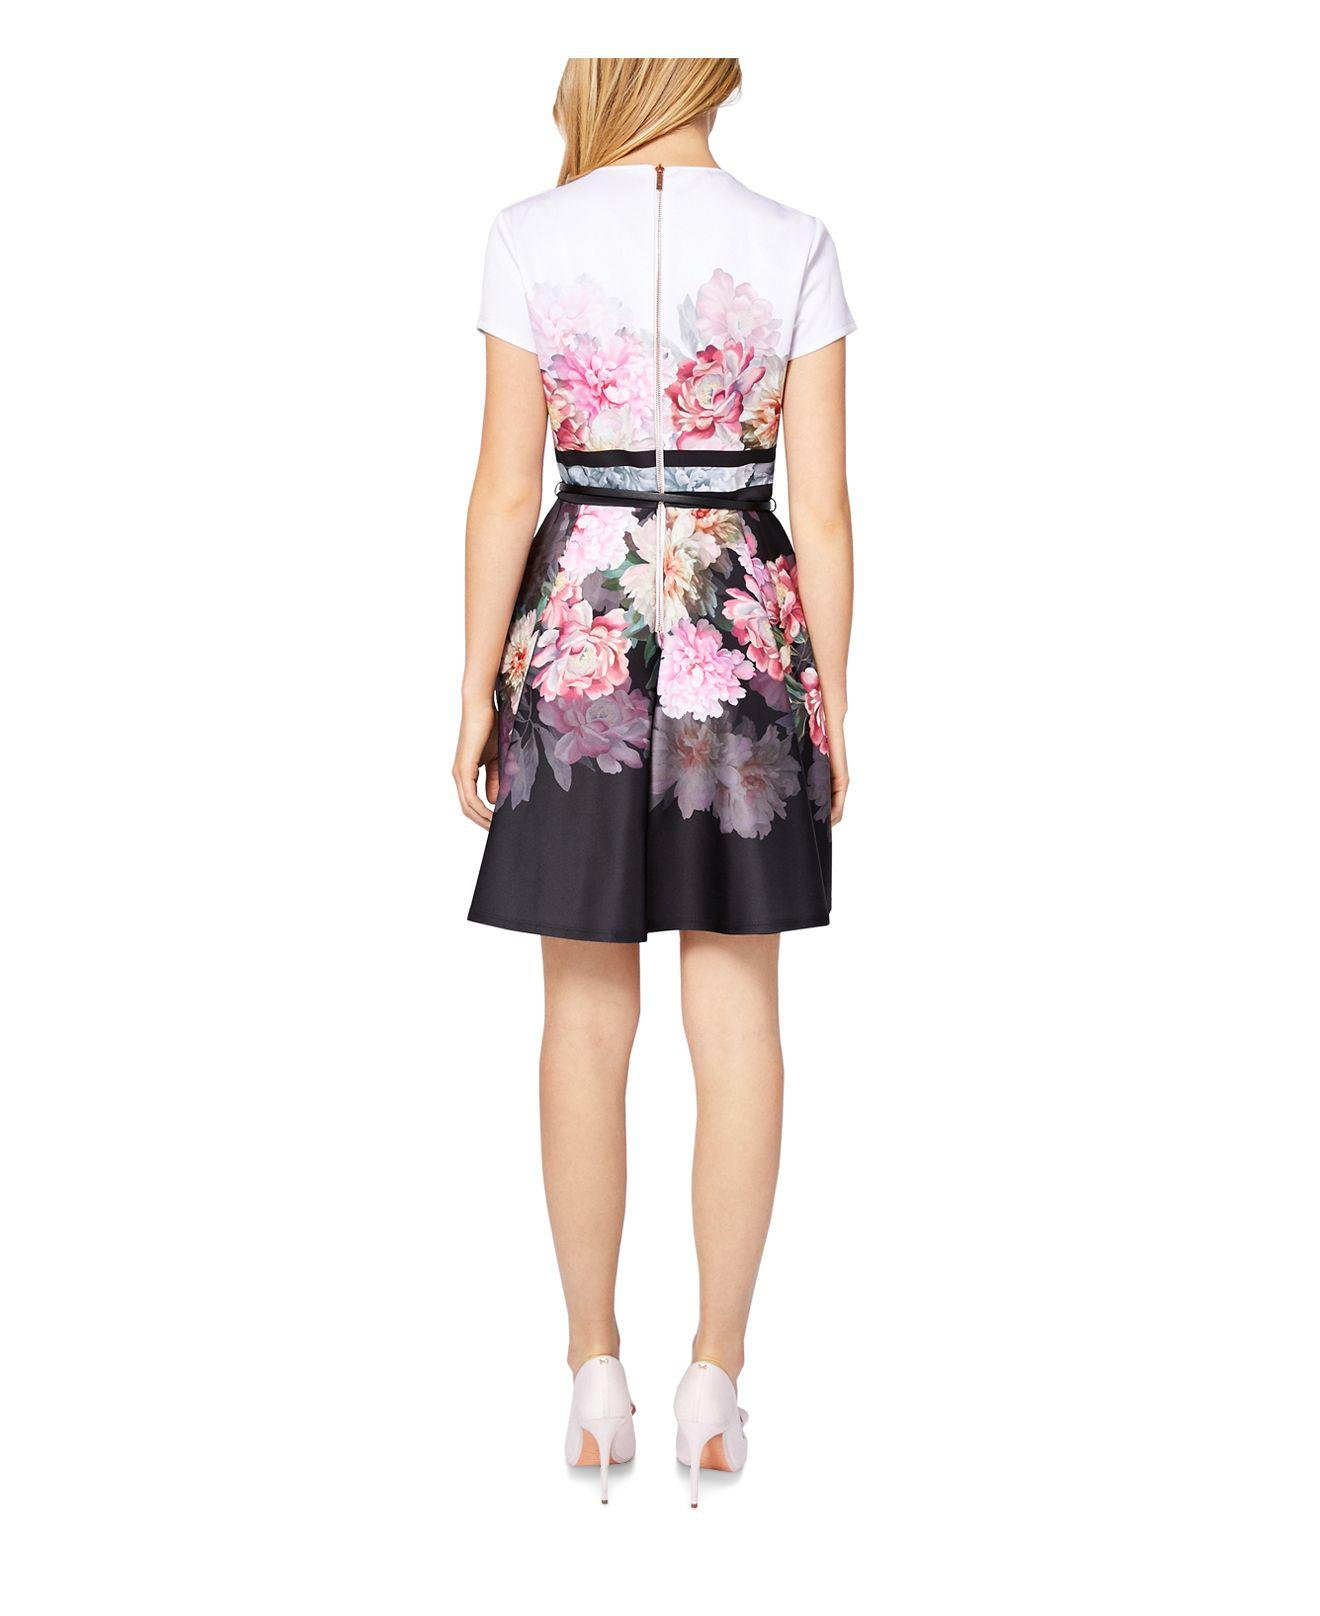 826bc765fa1496 Gallery. Previously sold at  Bloomingdale s · Women s Skater Dresses ...